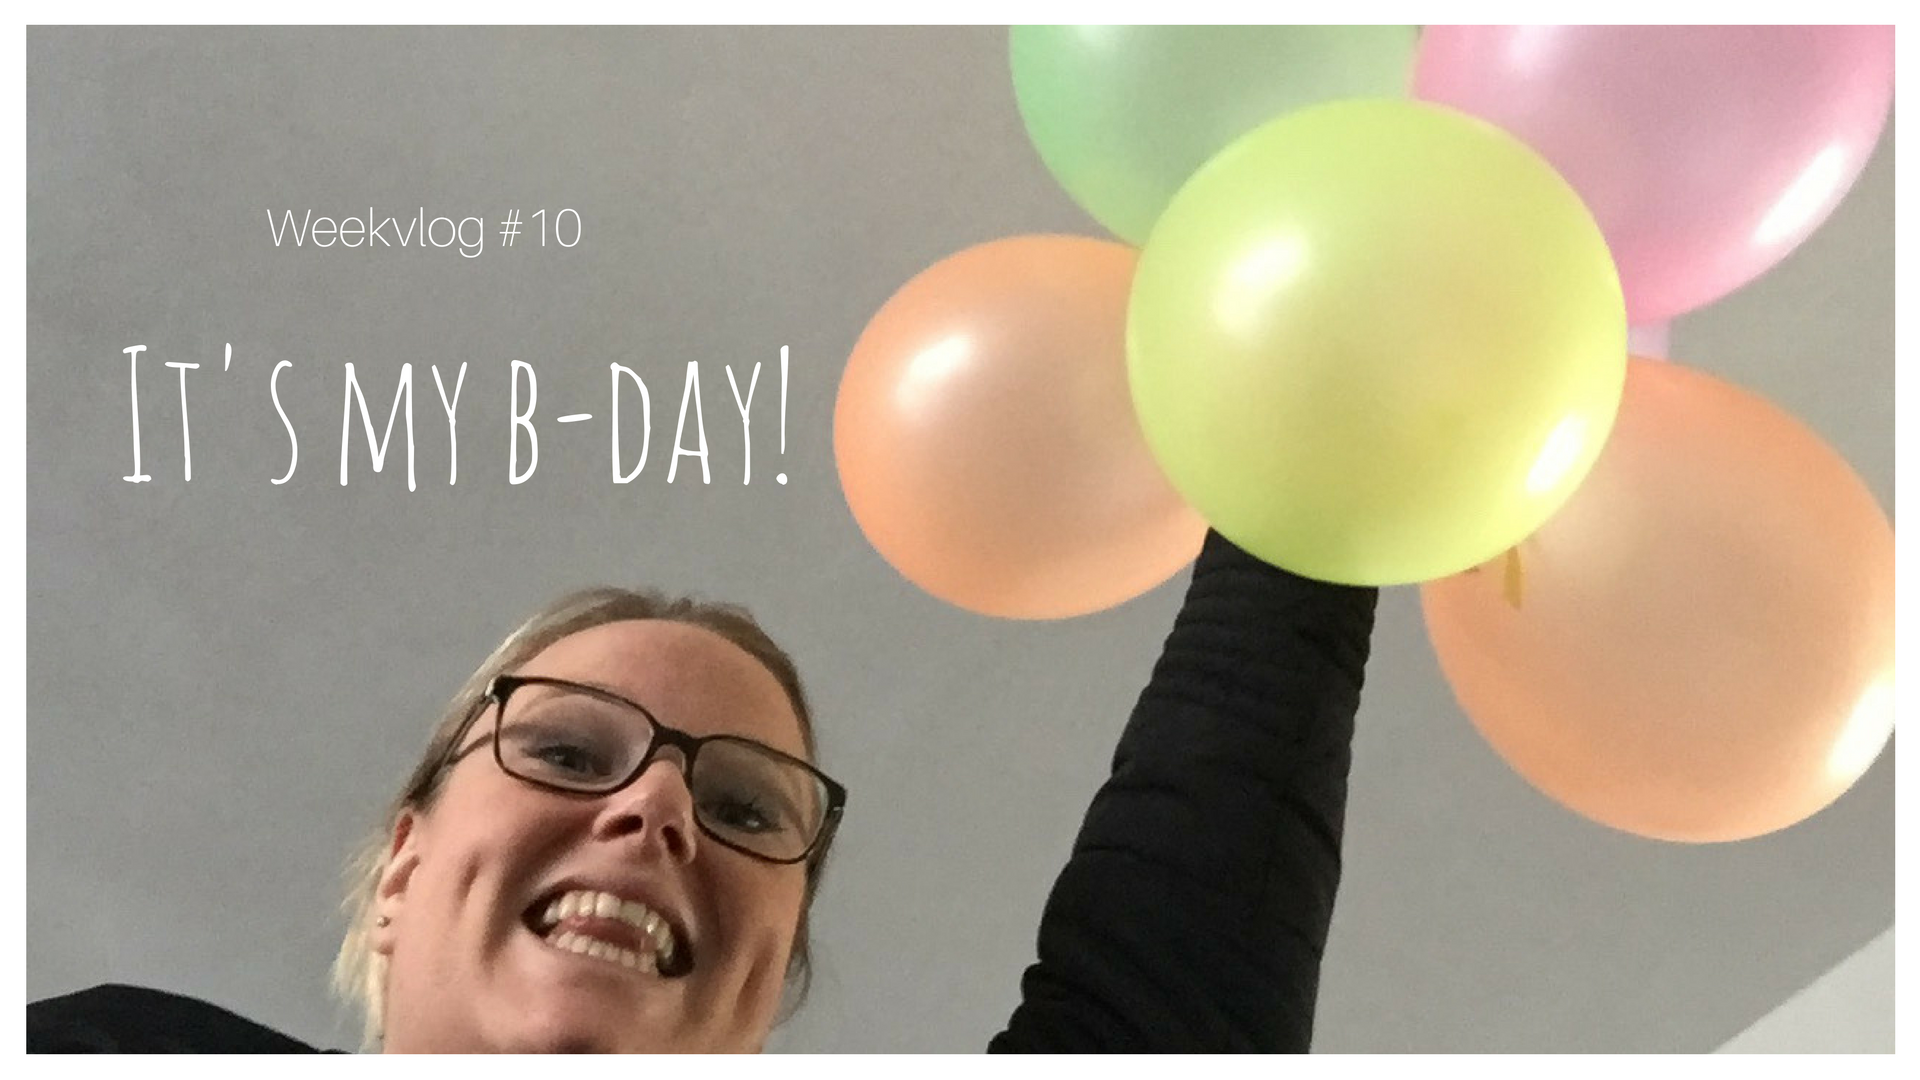 Weekvlog #10 It's my b-day!